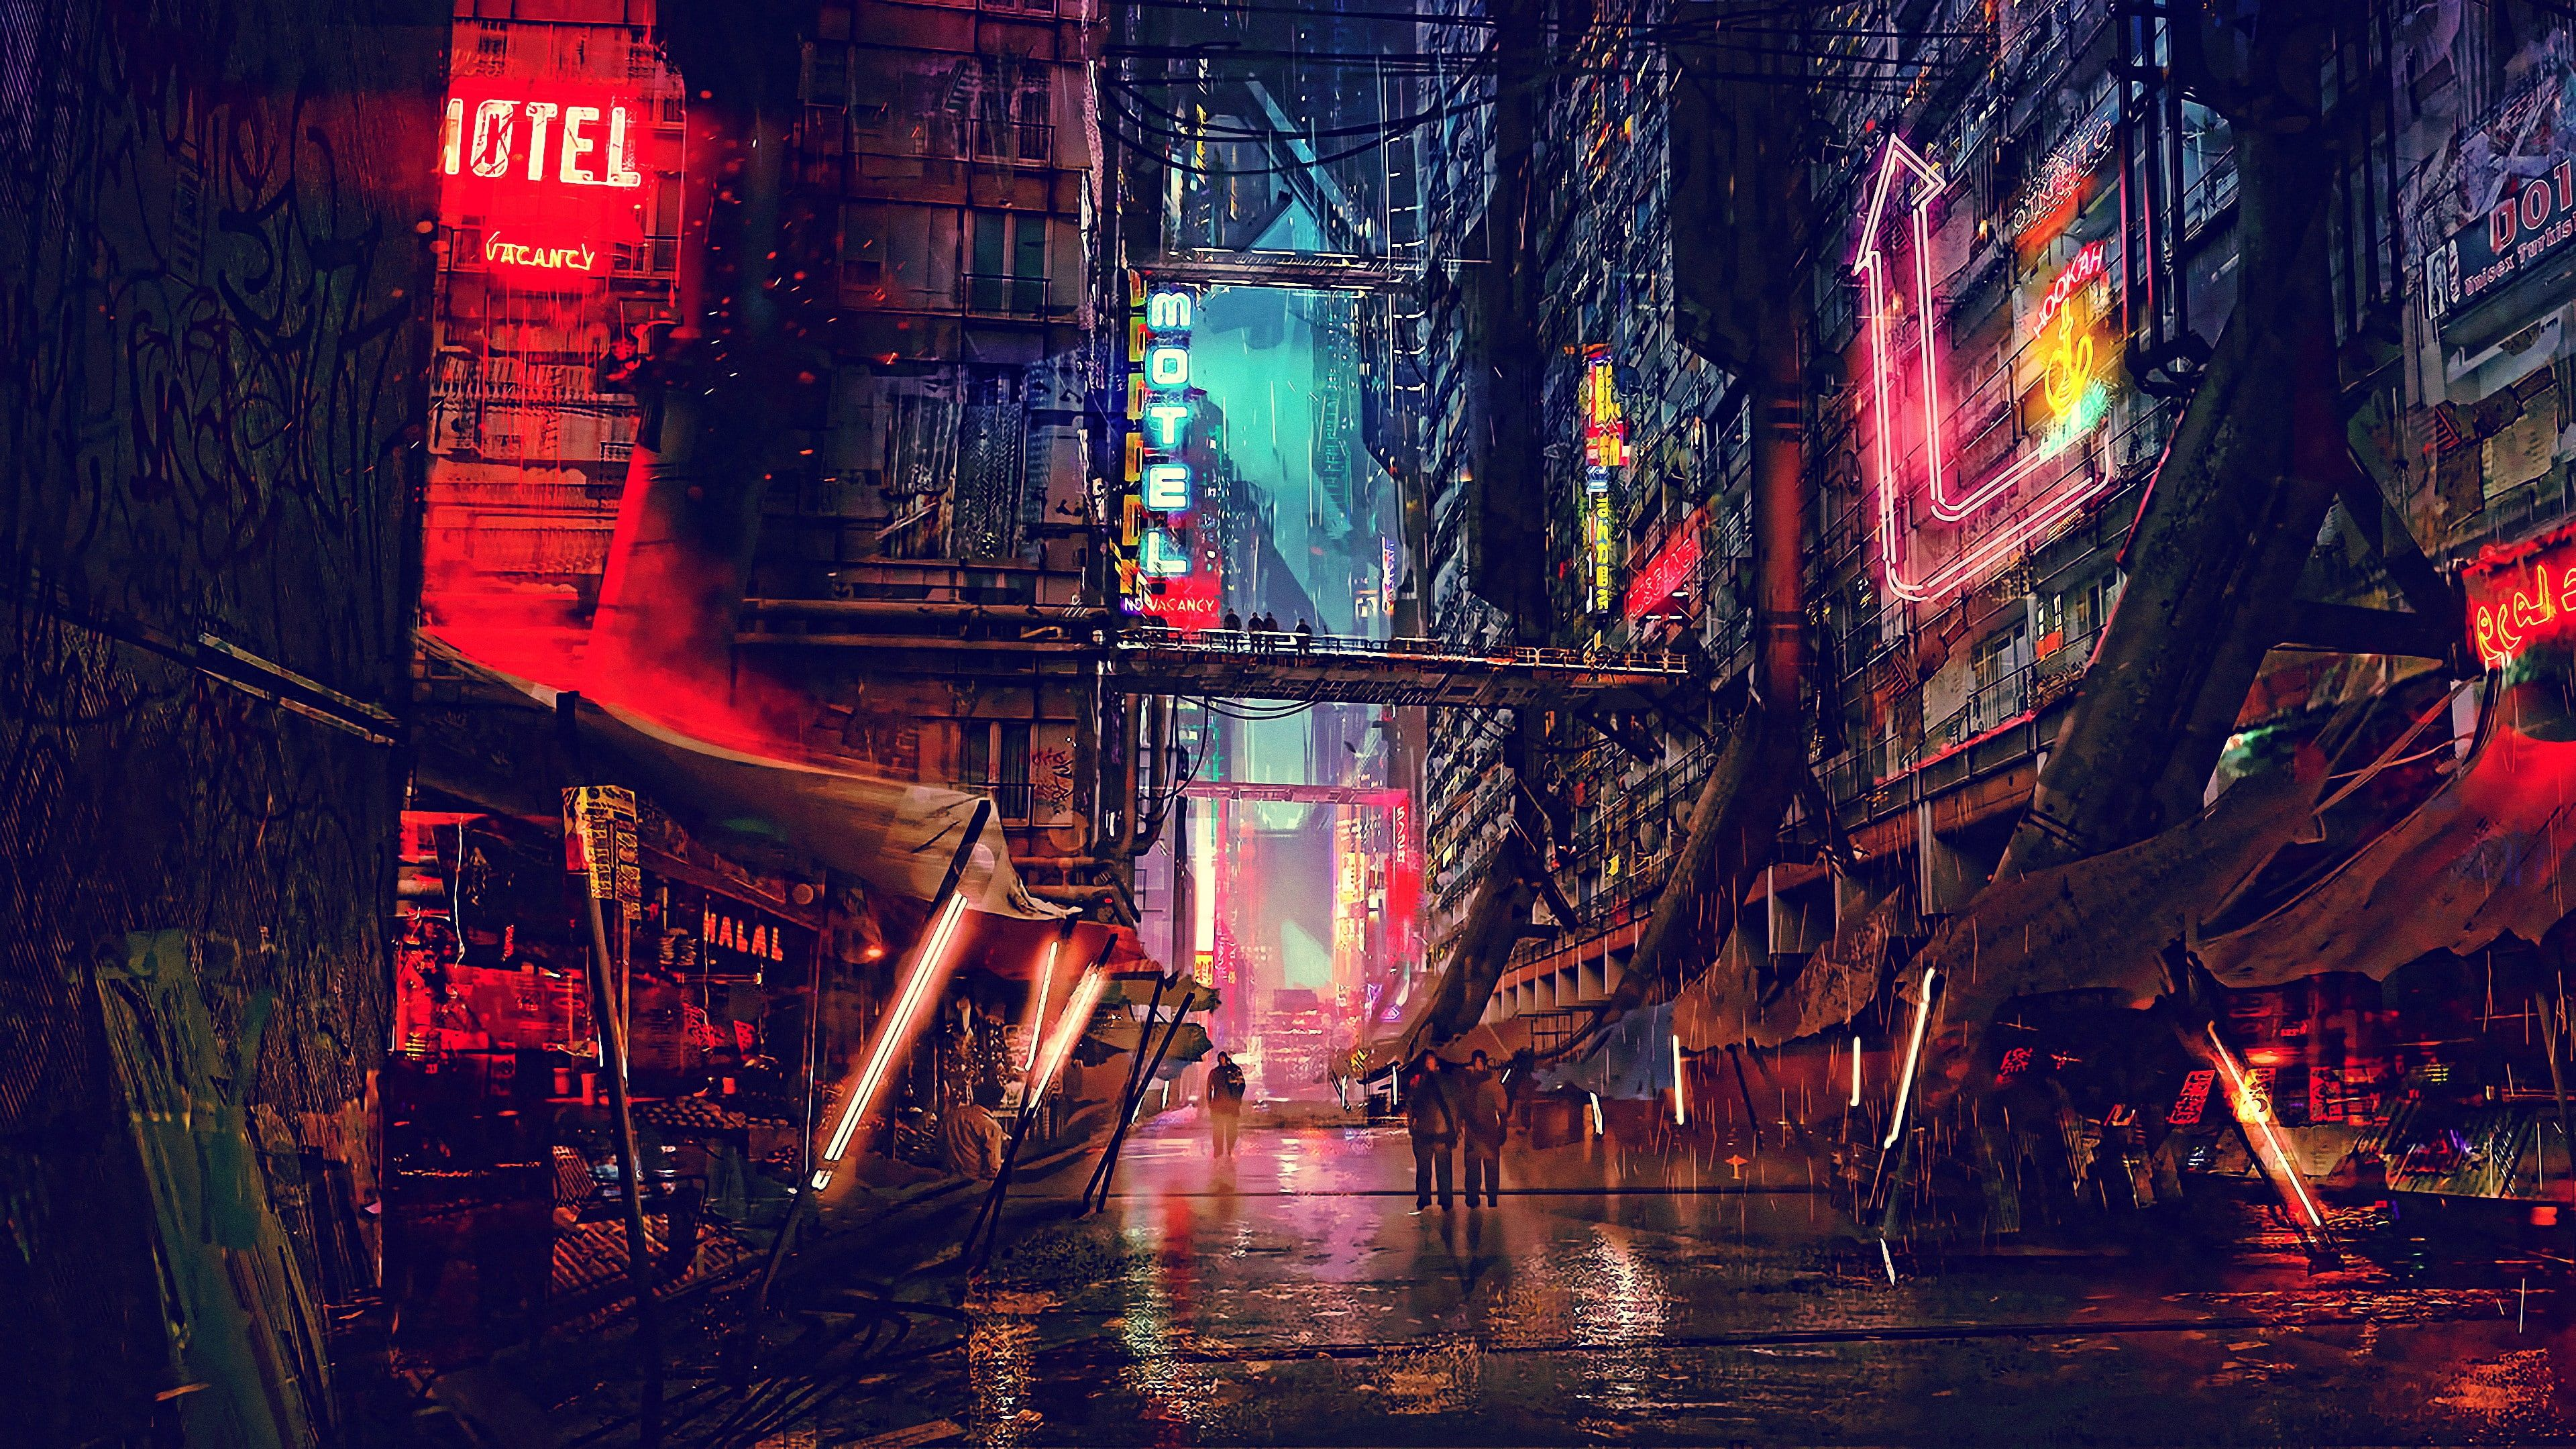 Street Art Artwork Digital Art Futuristic City Darkness Science Fiction Scifi Cyberpunk City Night Futuristic City City Wallpaper Building Illustration